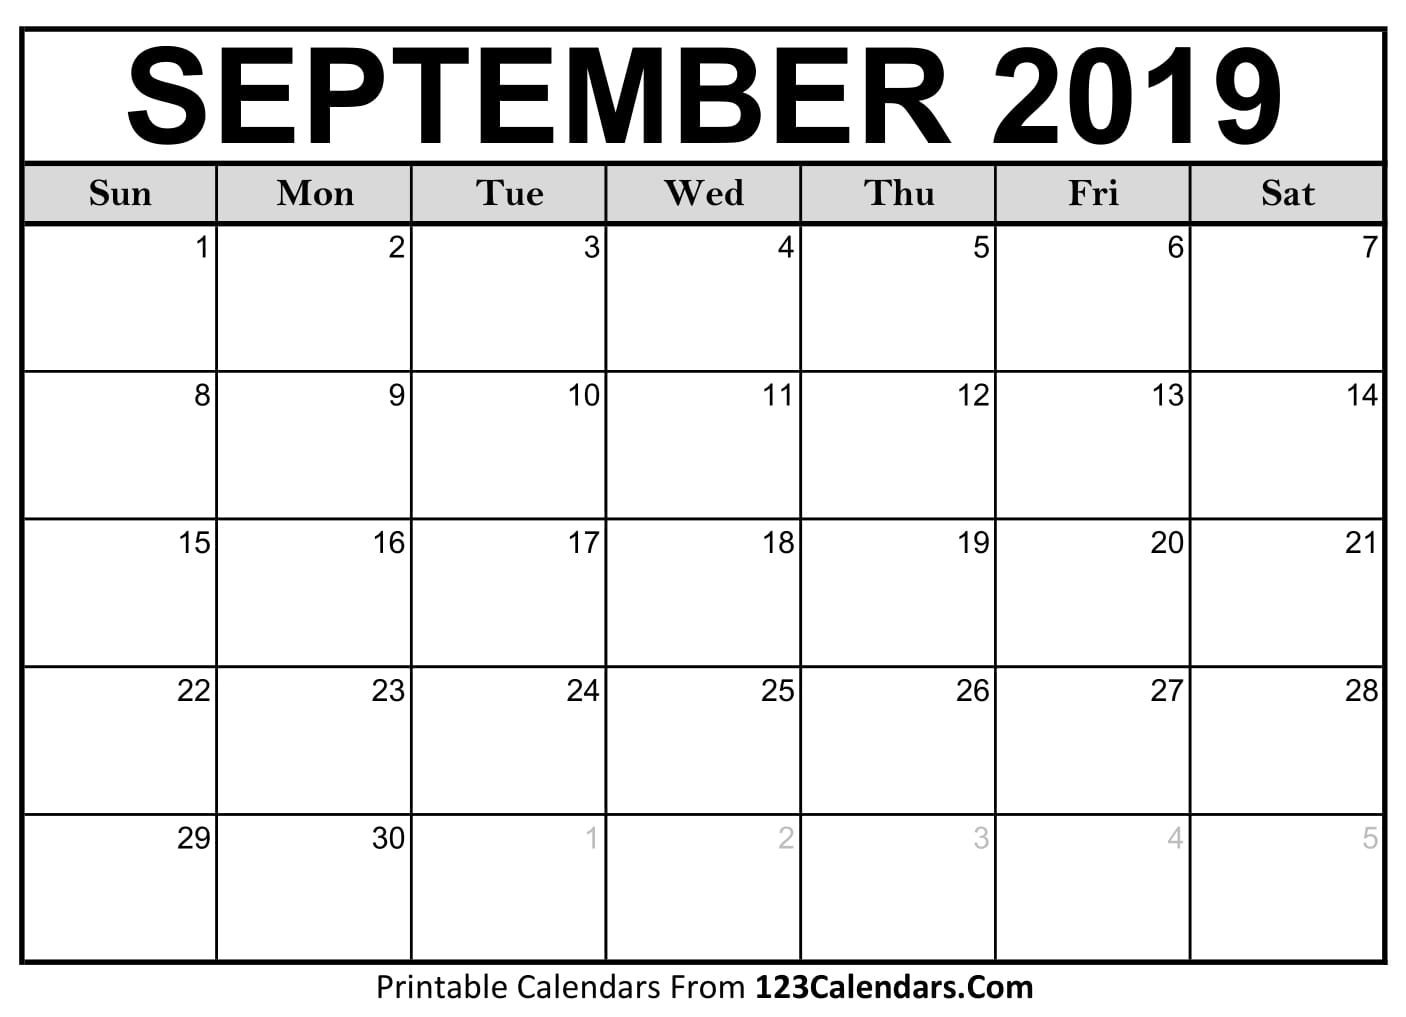 image relating to September Printable Calendar identify September 2019 Printable Calendar